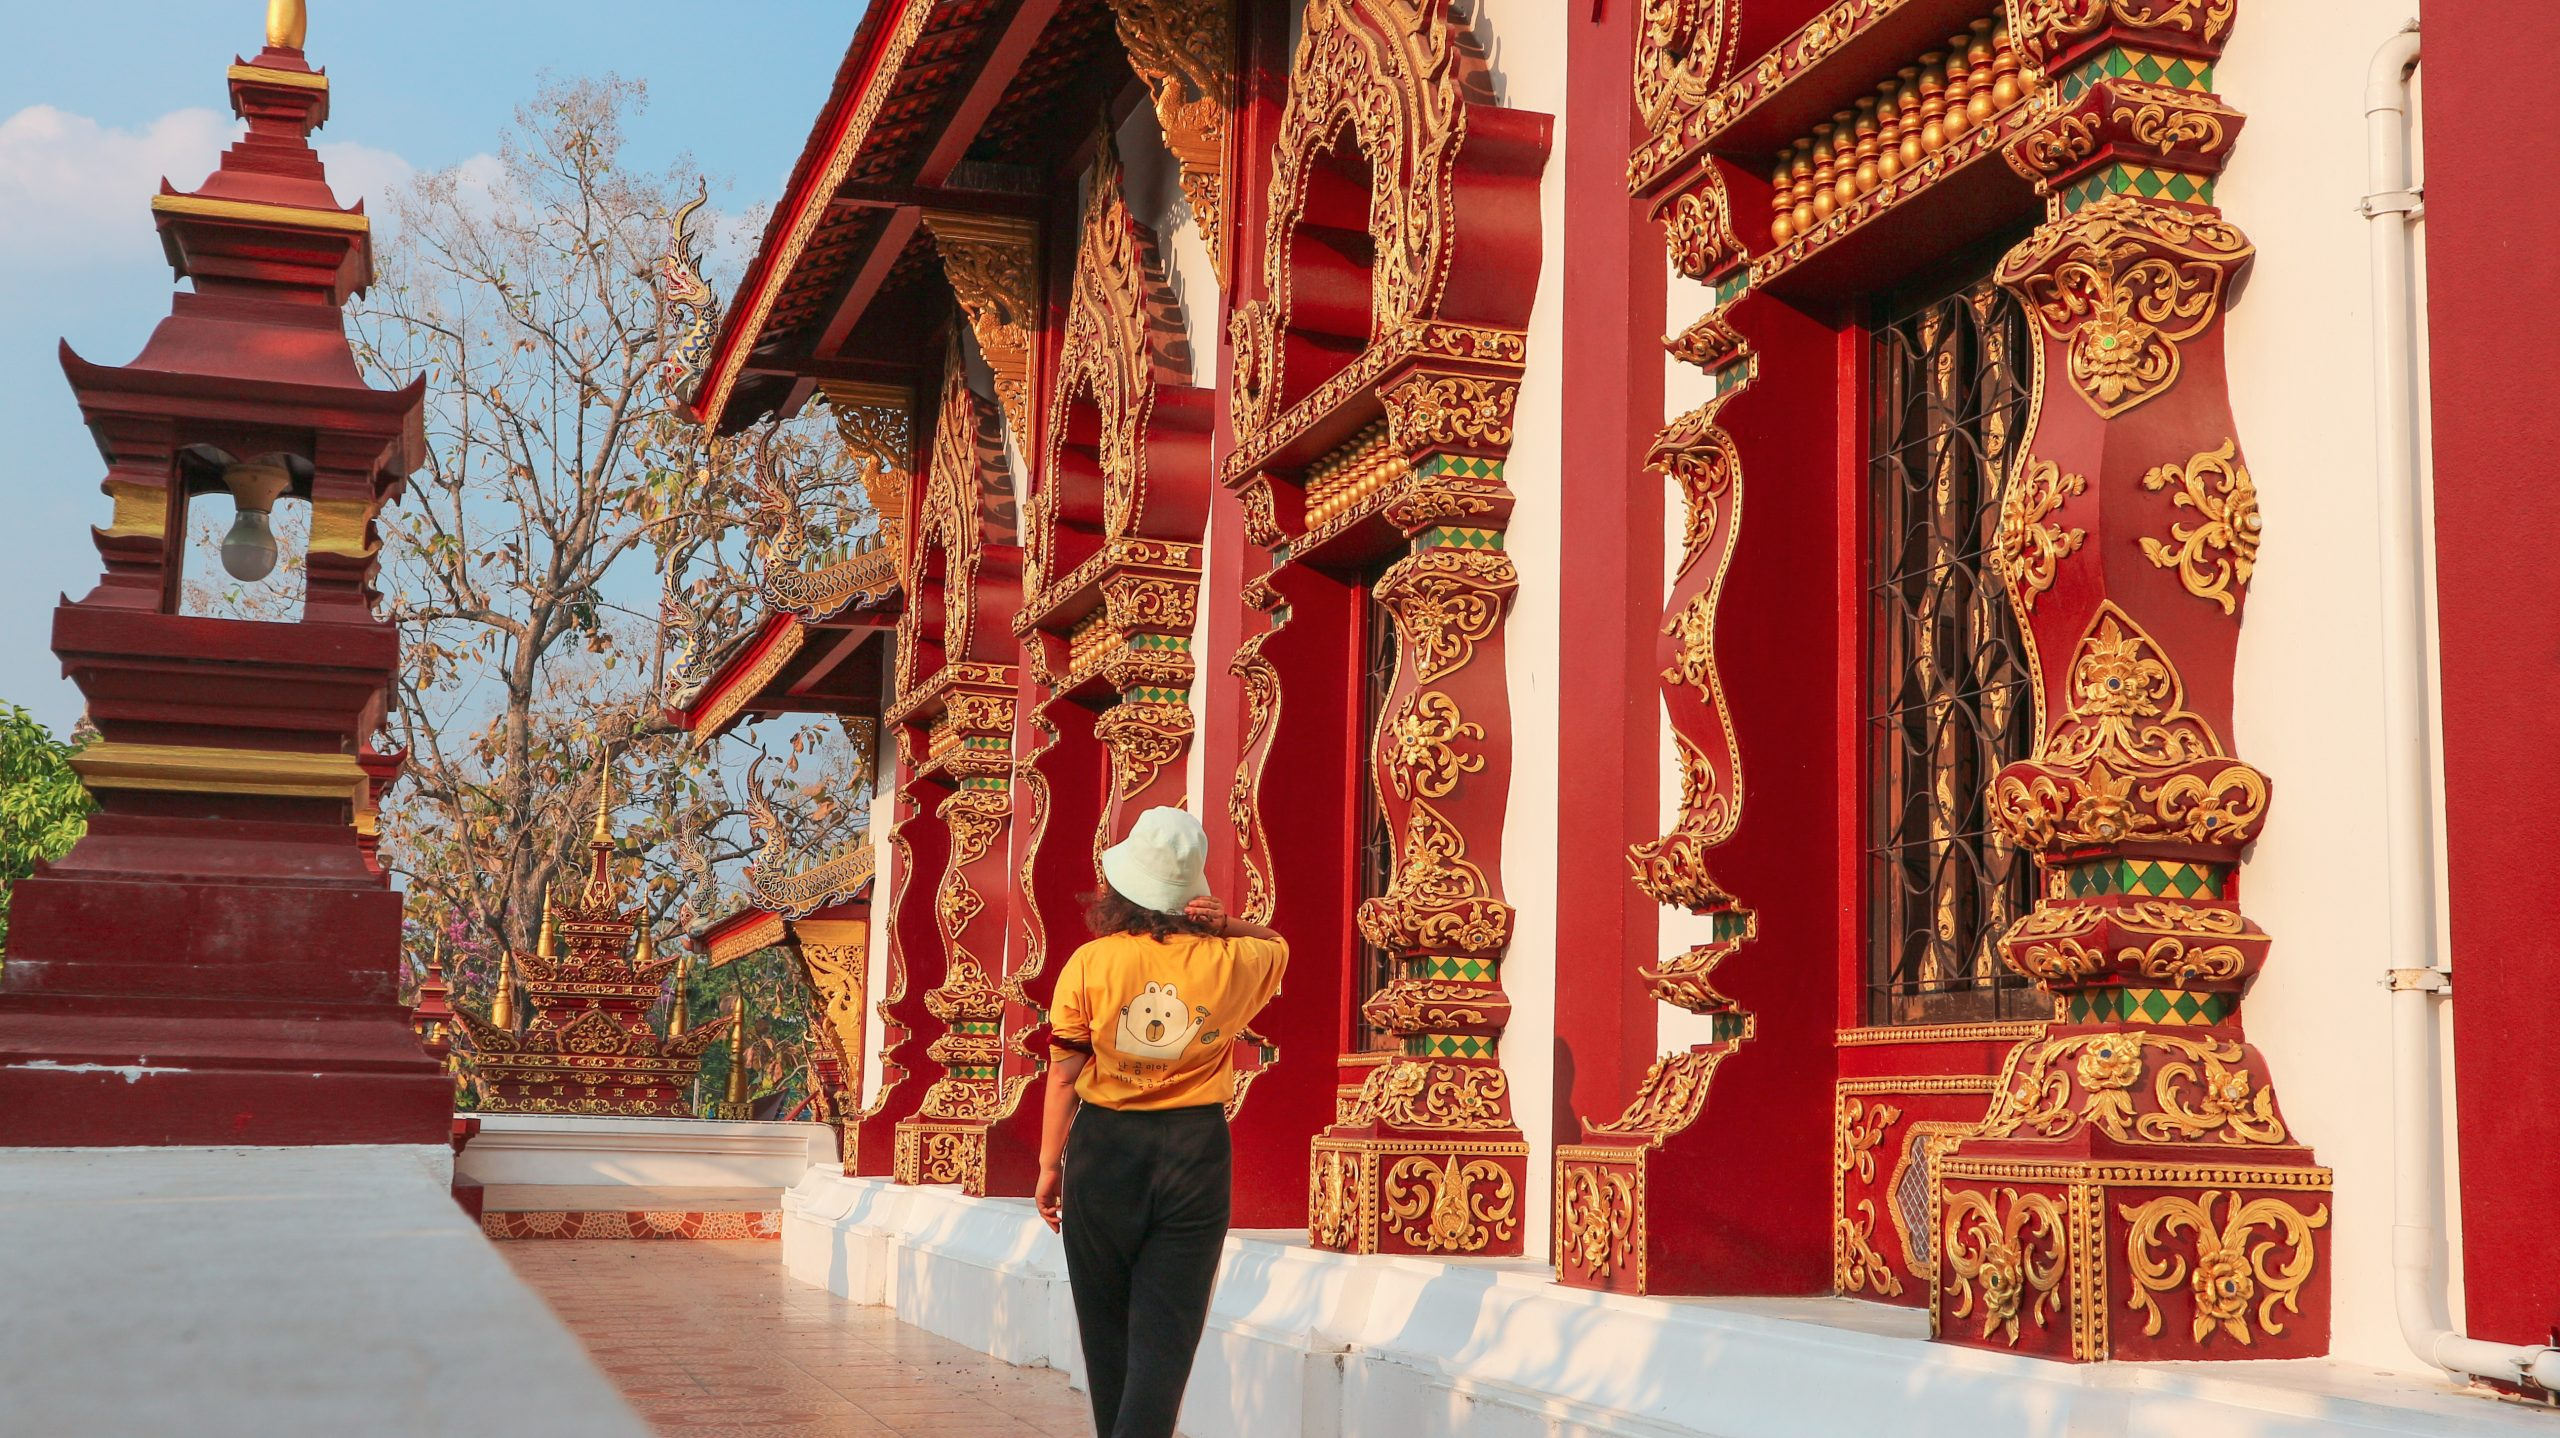 Chiang Mai temples you should visit